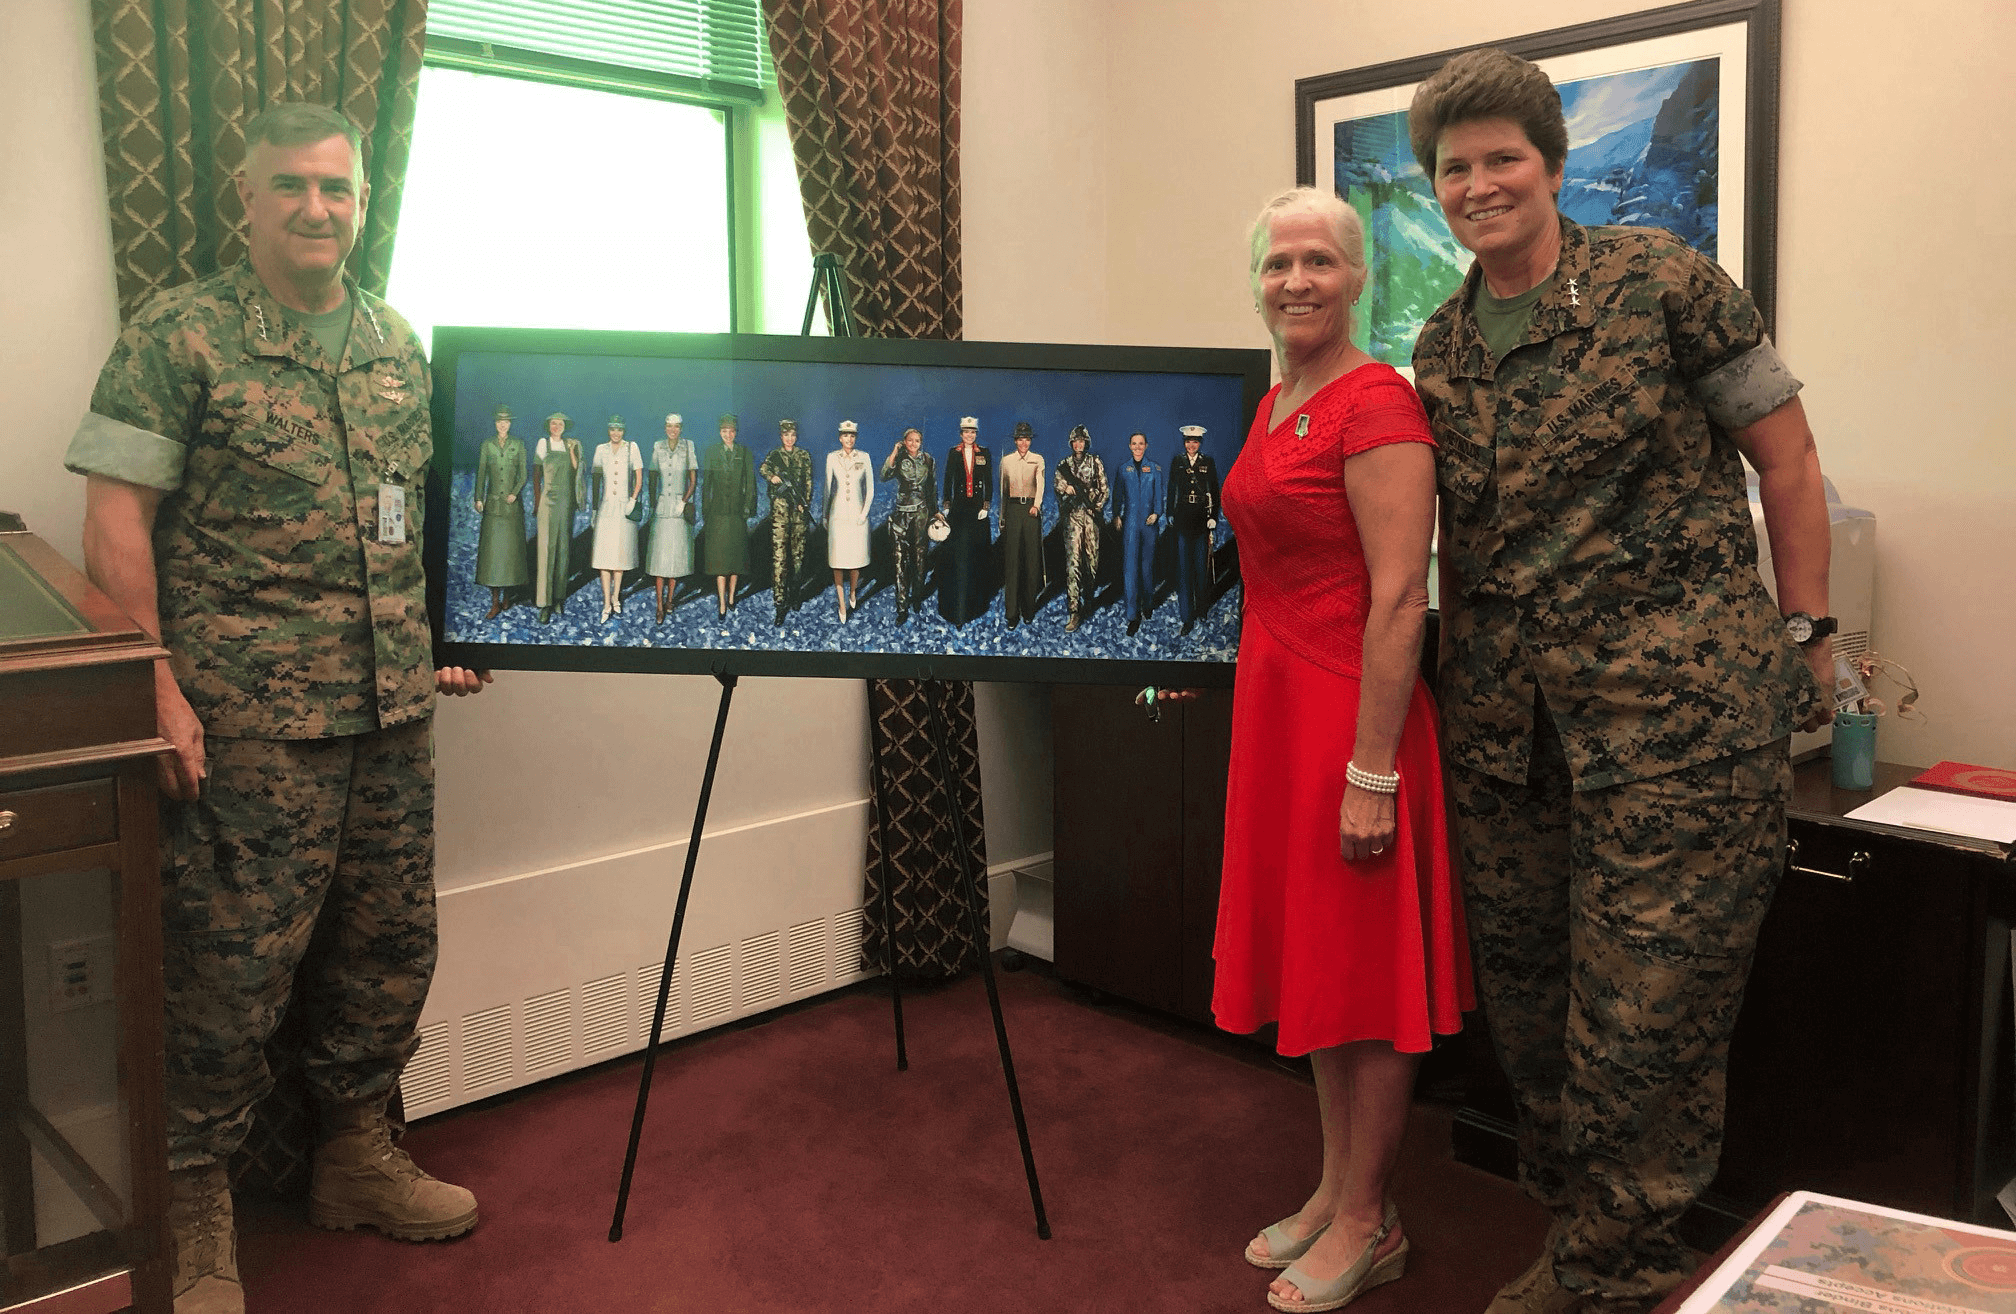 """VETERANS DAY: """"Semper Fi Sisters"""" painting honors Marine Corp women Military Portraits by Todd Krasovetz"""